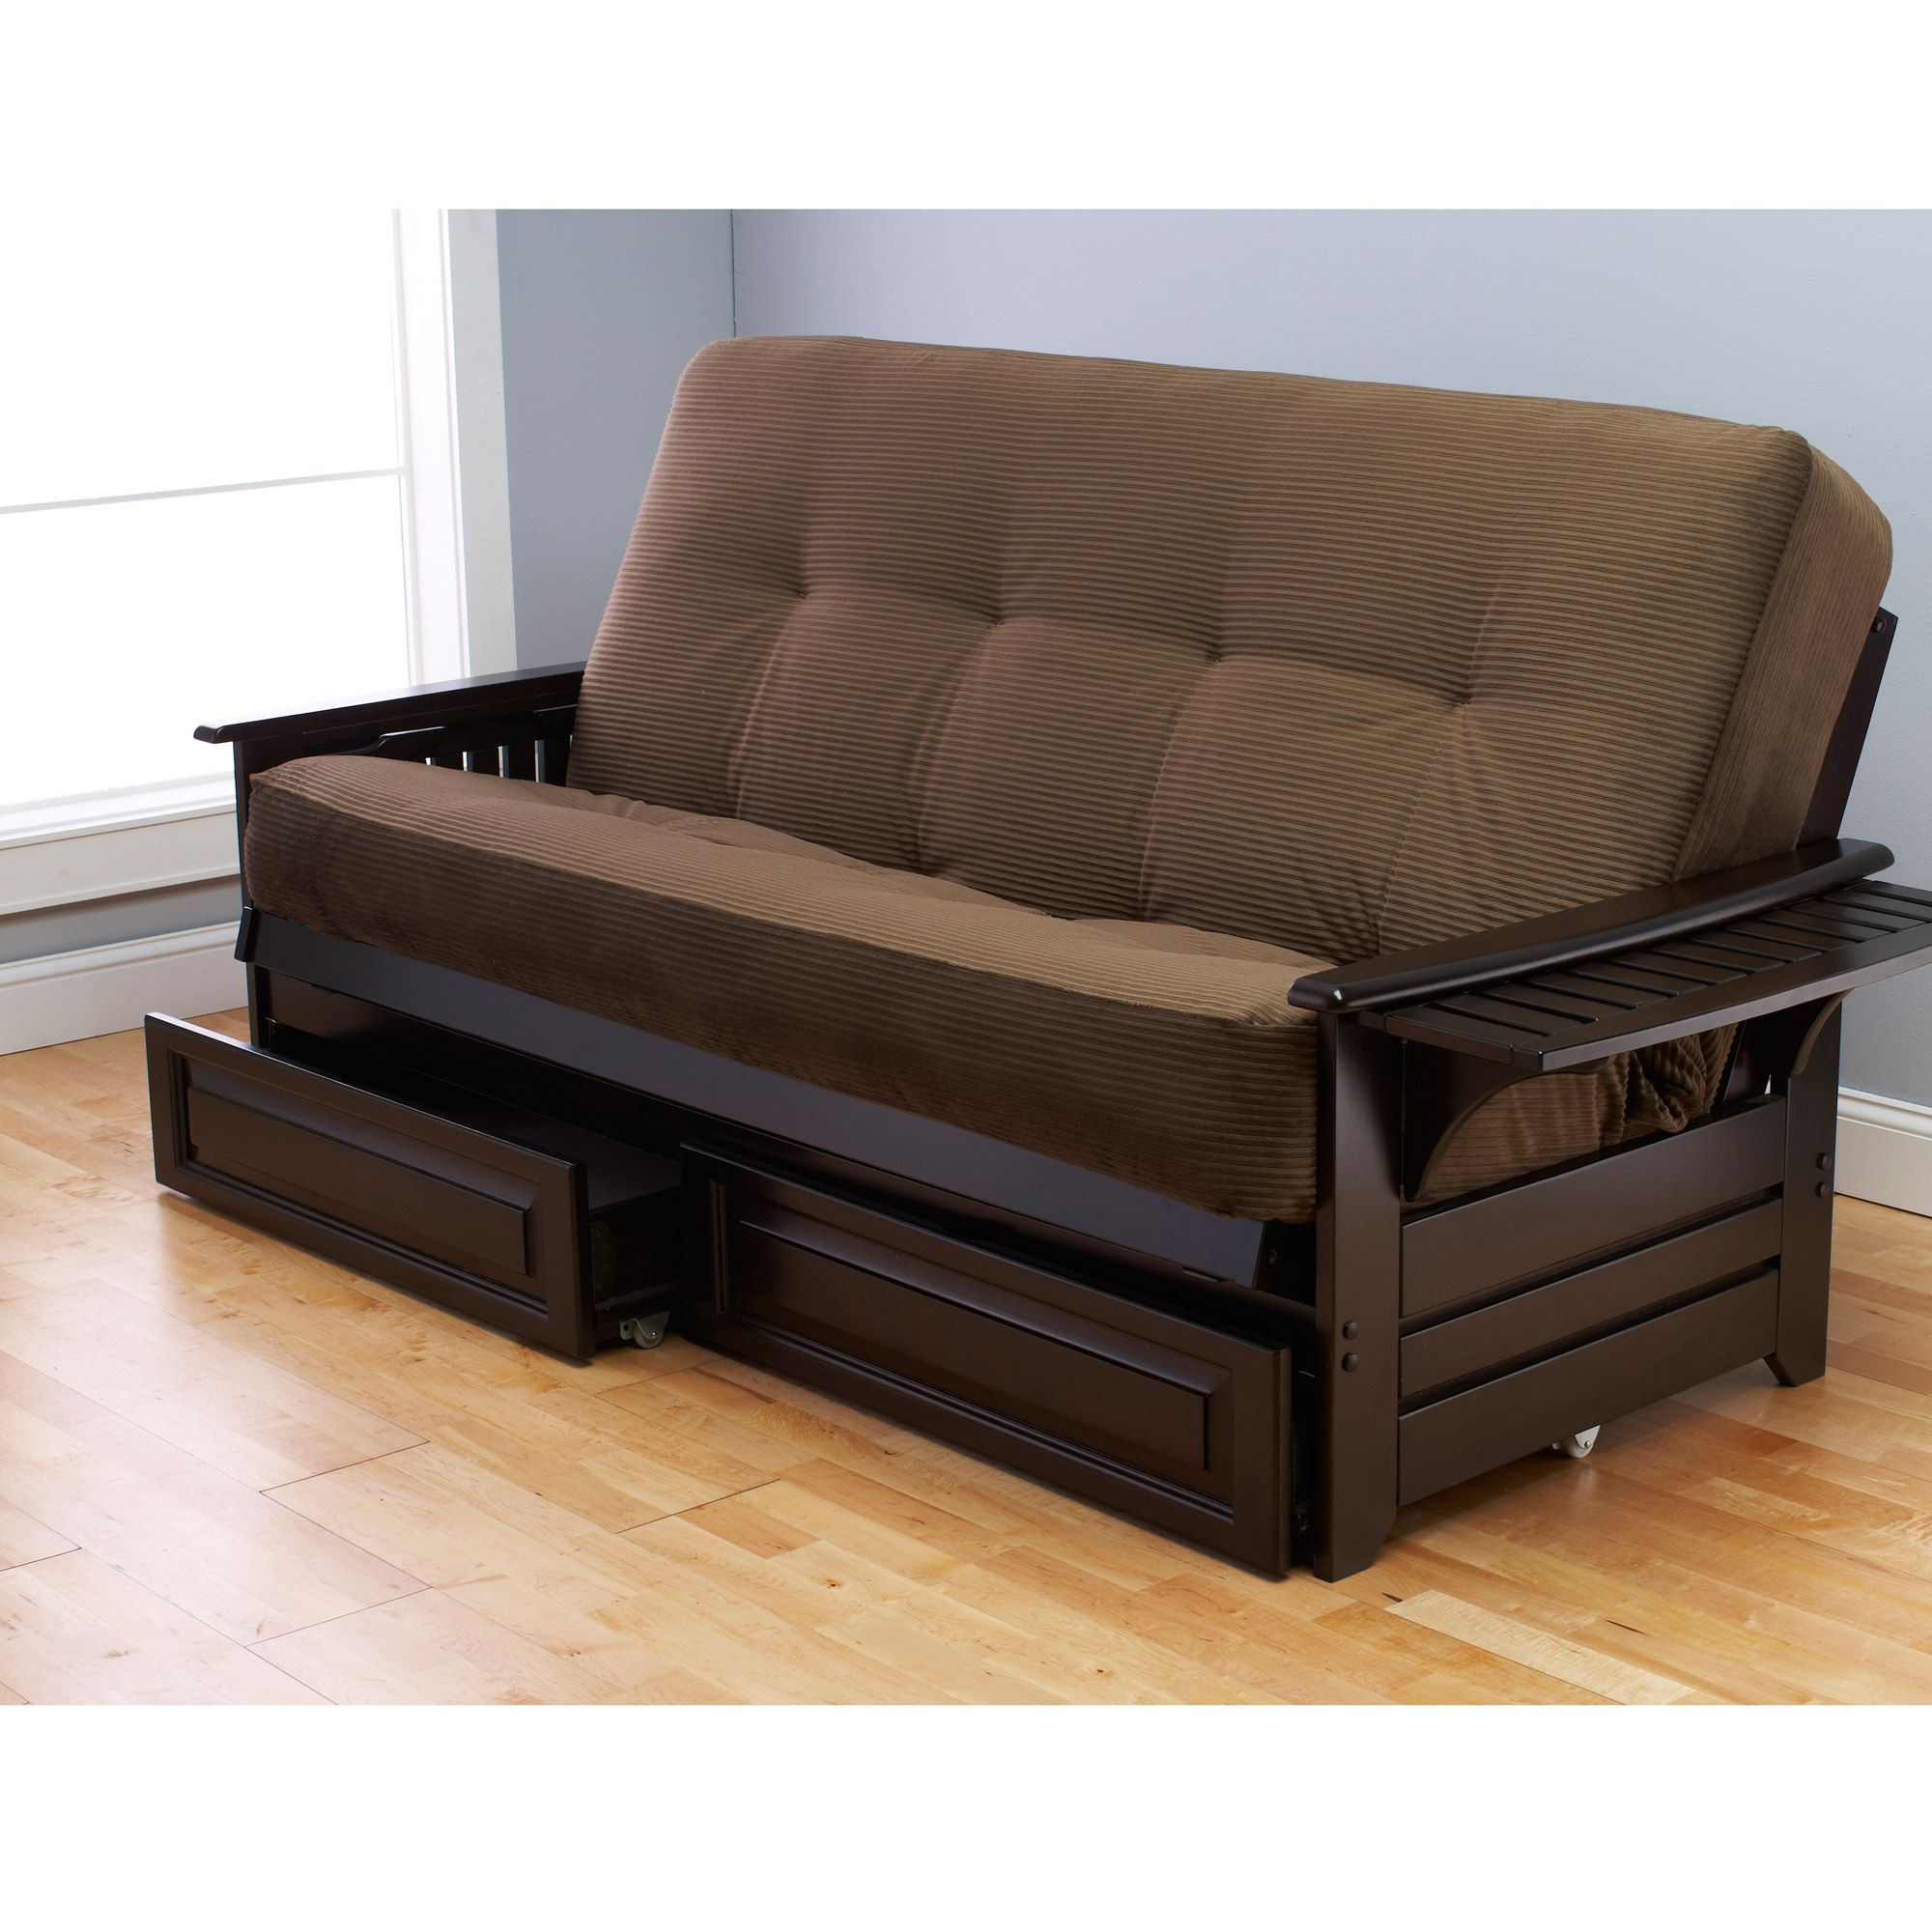 instructions less for futons mattress interior fresh inspirational futon sofa to cdbossington replacement with bed